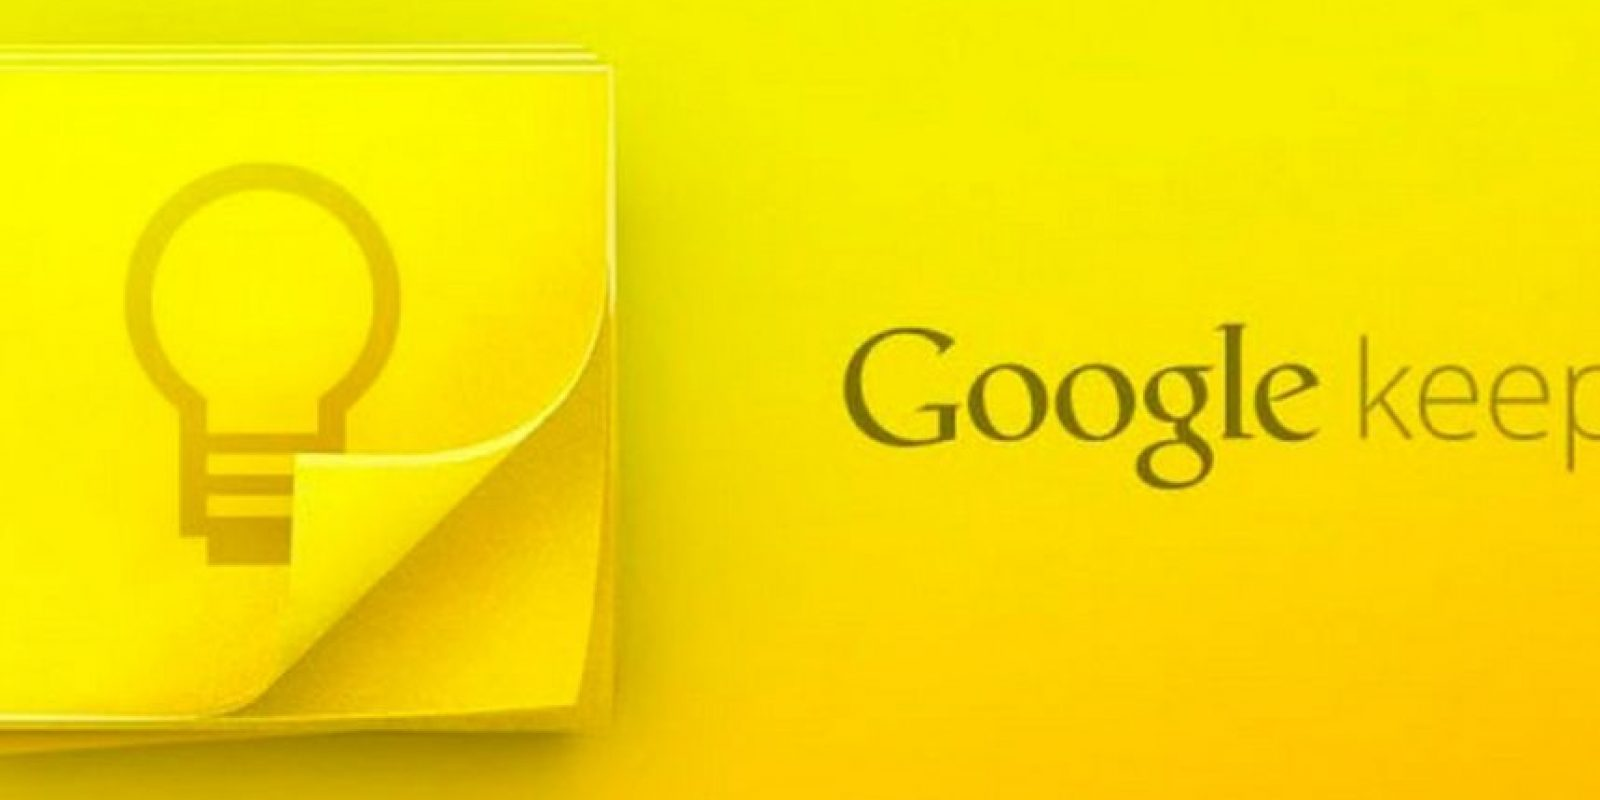 4) Google Keep. Foto: Google Inc.